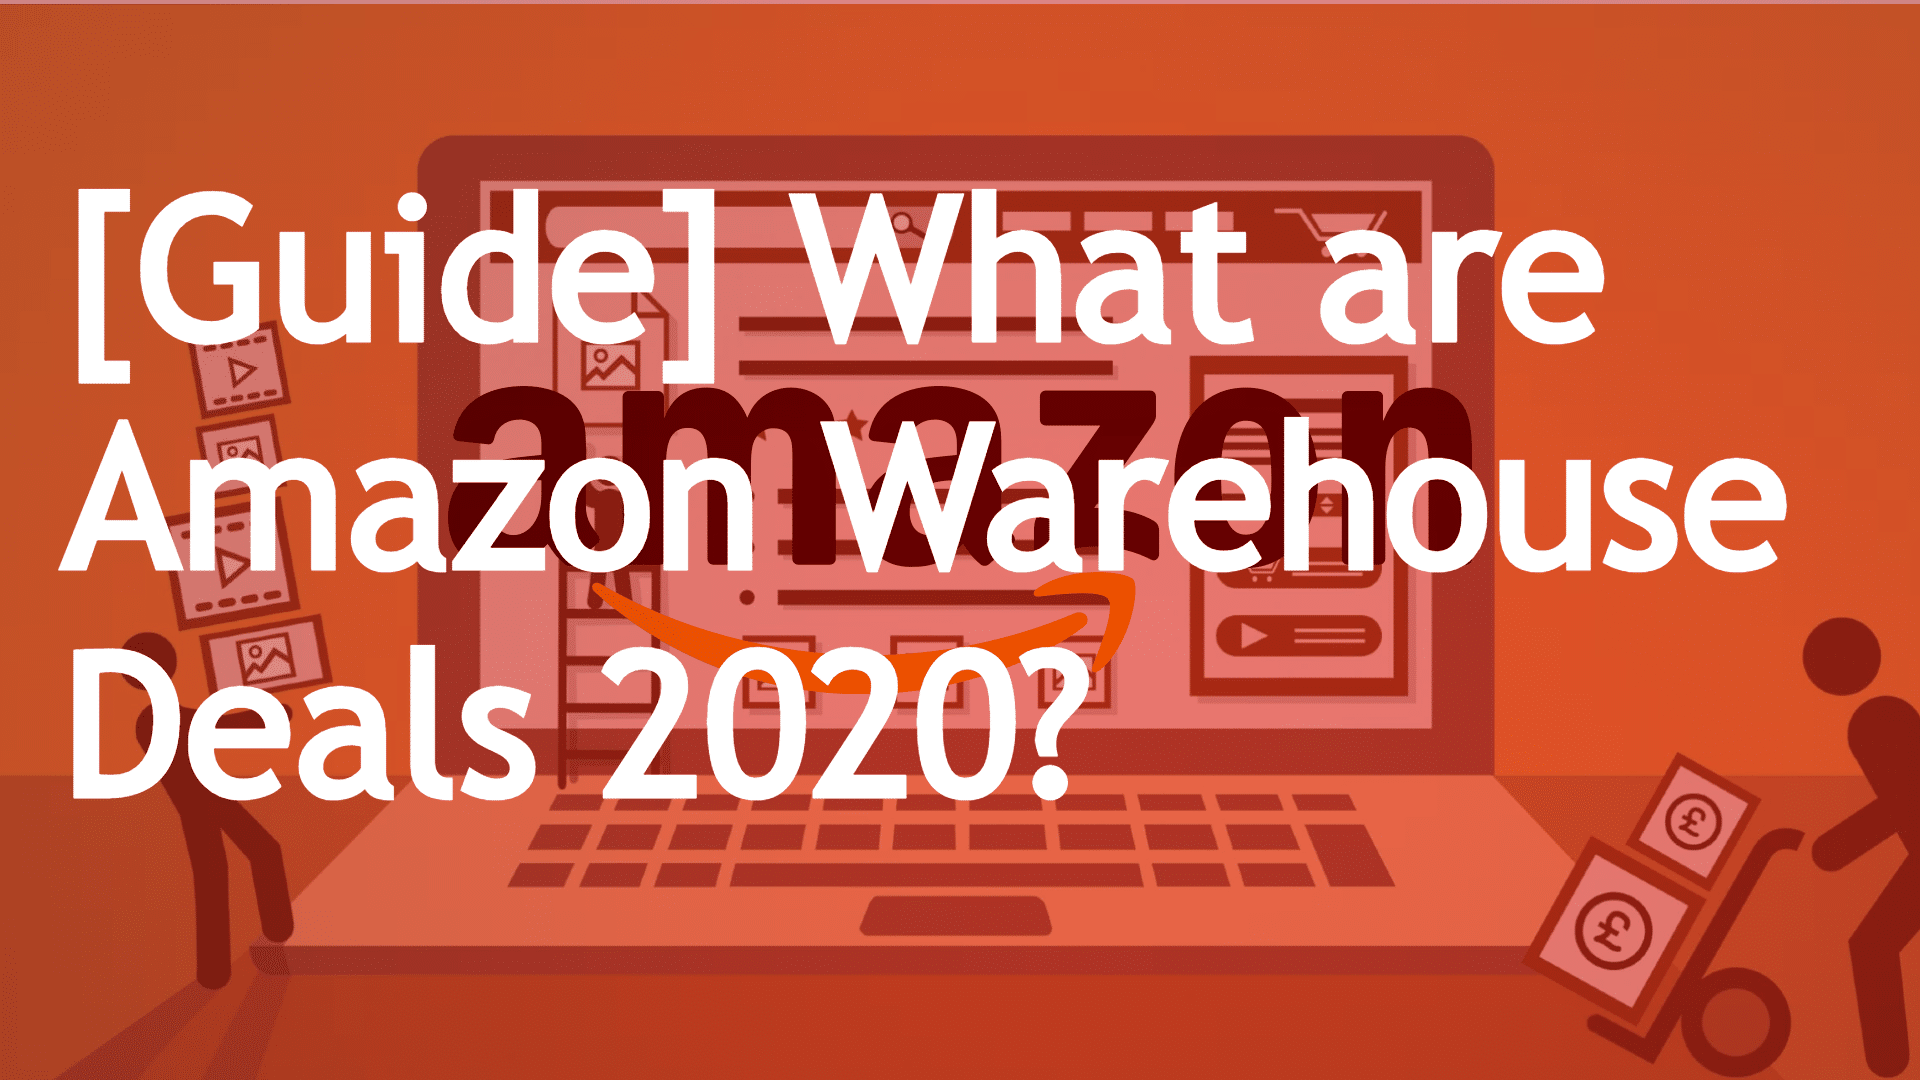 Amazon Warehouse deals 2020